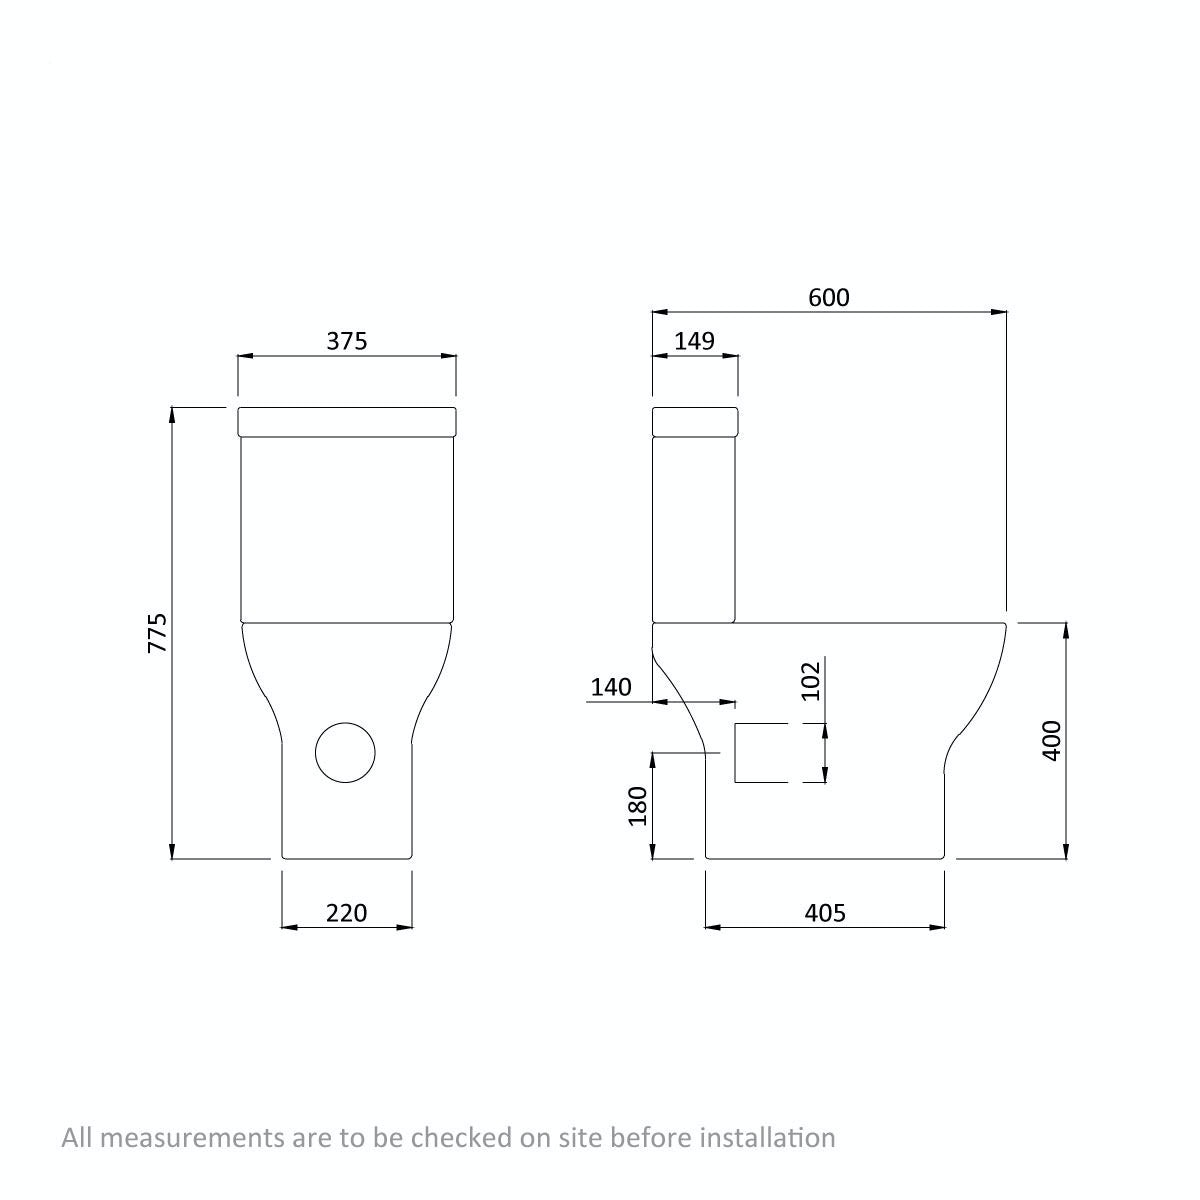 Dimensions for Orchard Derwent square compact close coupled toilet with slimline soft close toilet seat